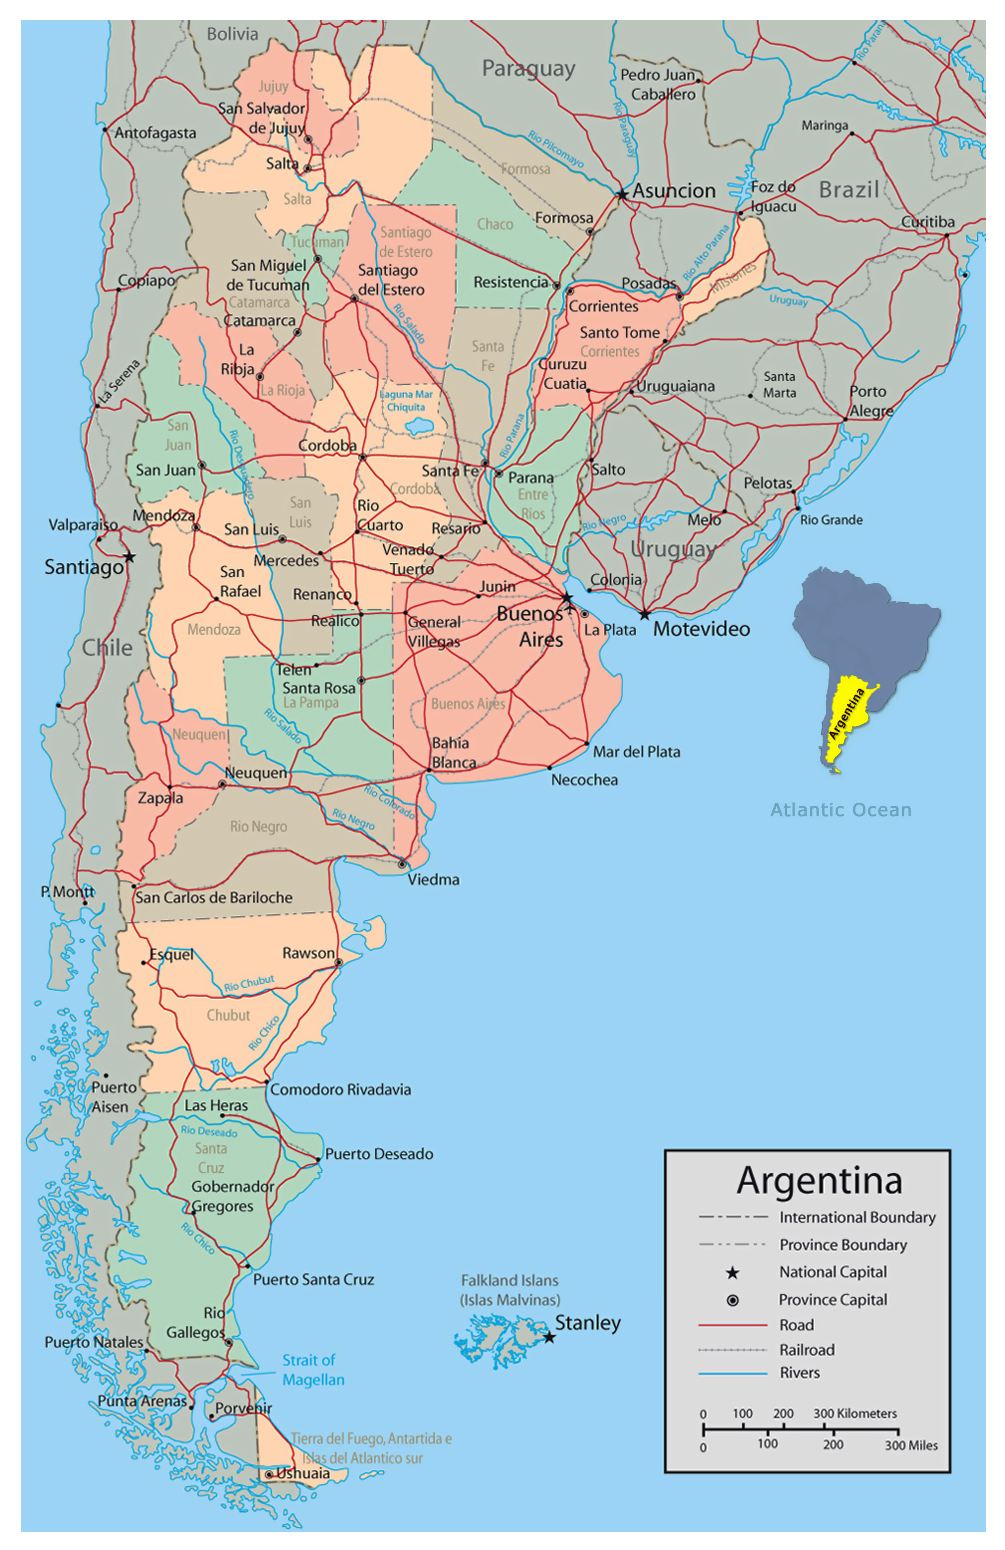 argentina major cities map Detailed Political And Administrative Map Of Argentina With Major argentina major cities map